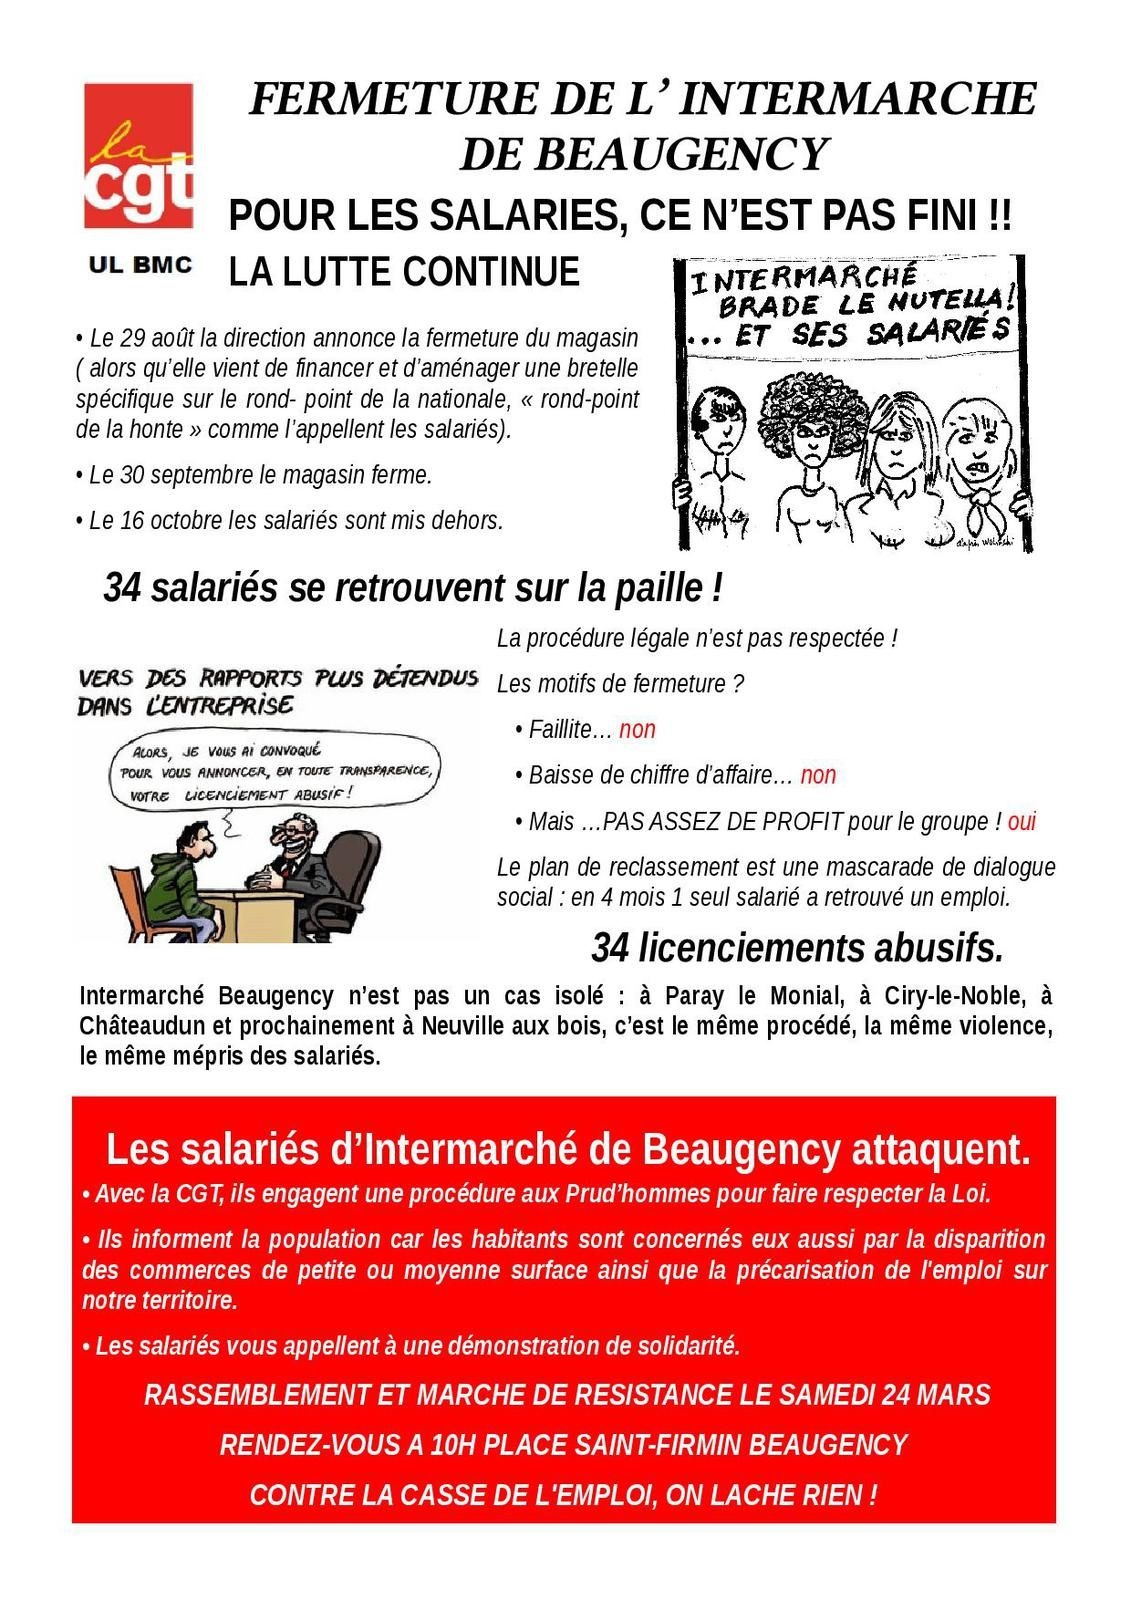 INTERMARCHE BEAUGENCY CGT